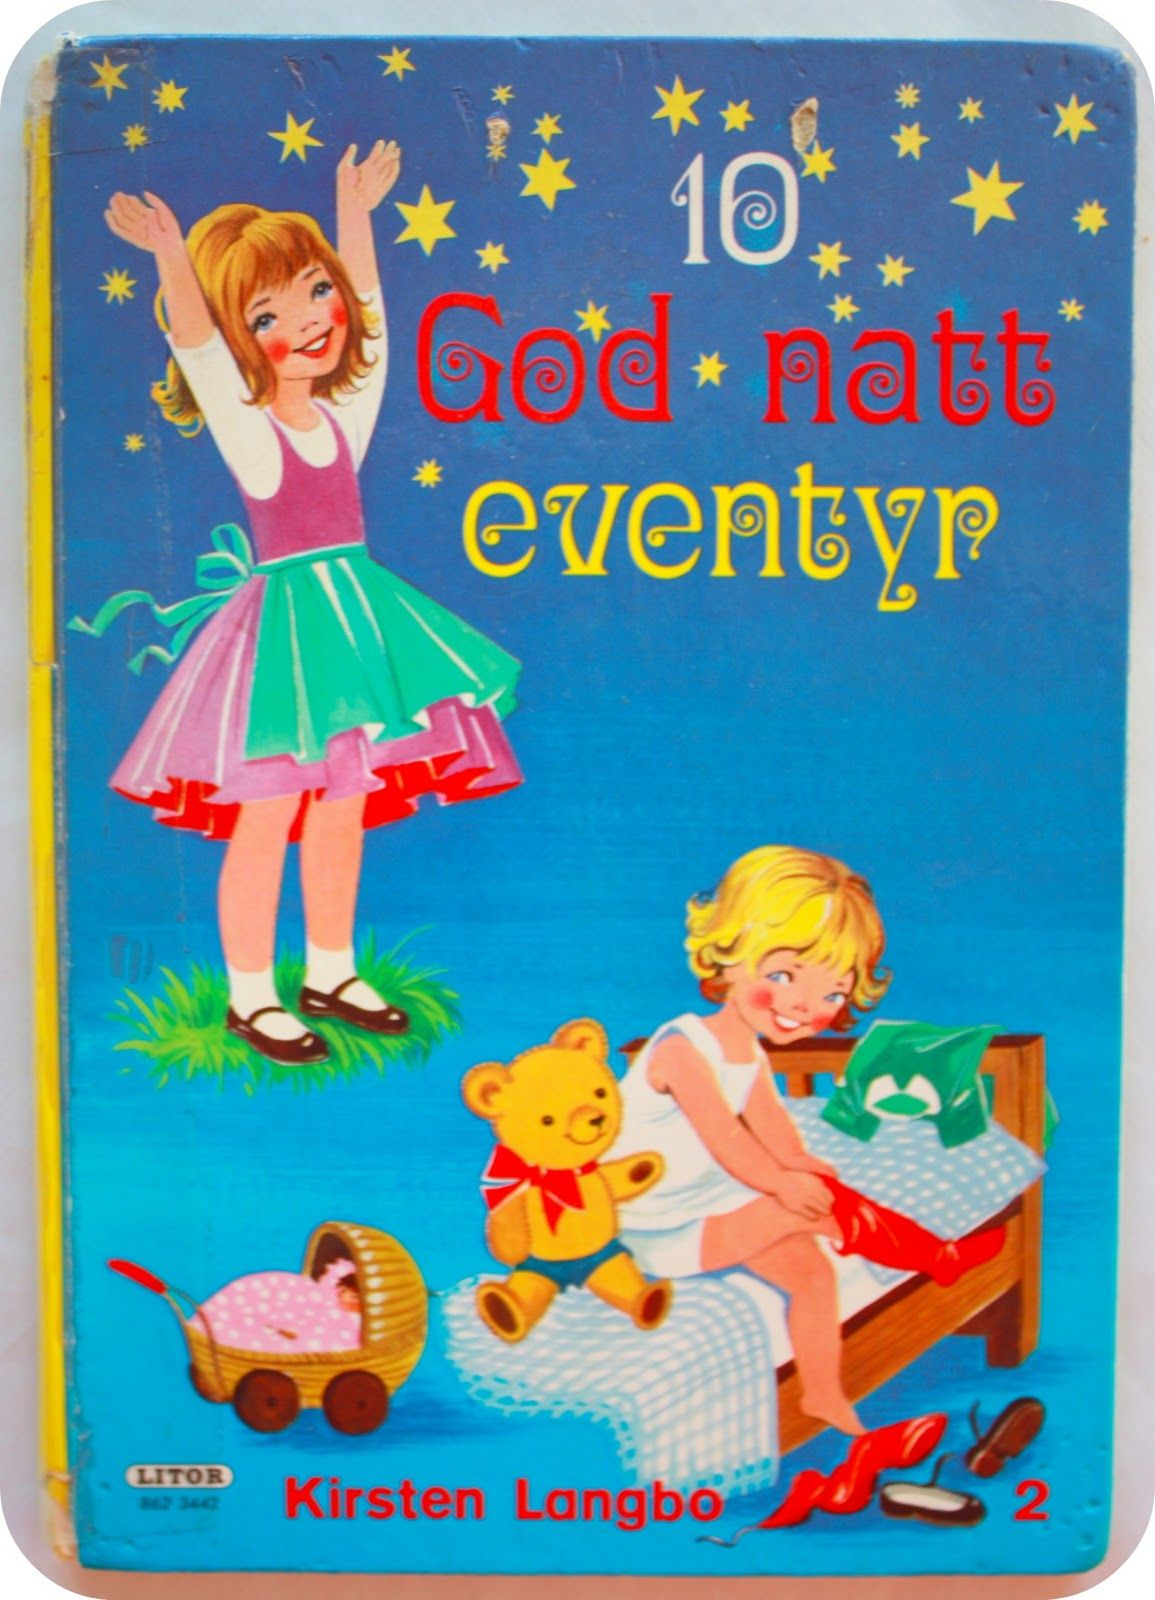 I had this book when I was a child. I miss it!!